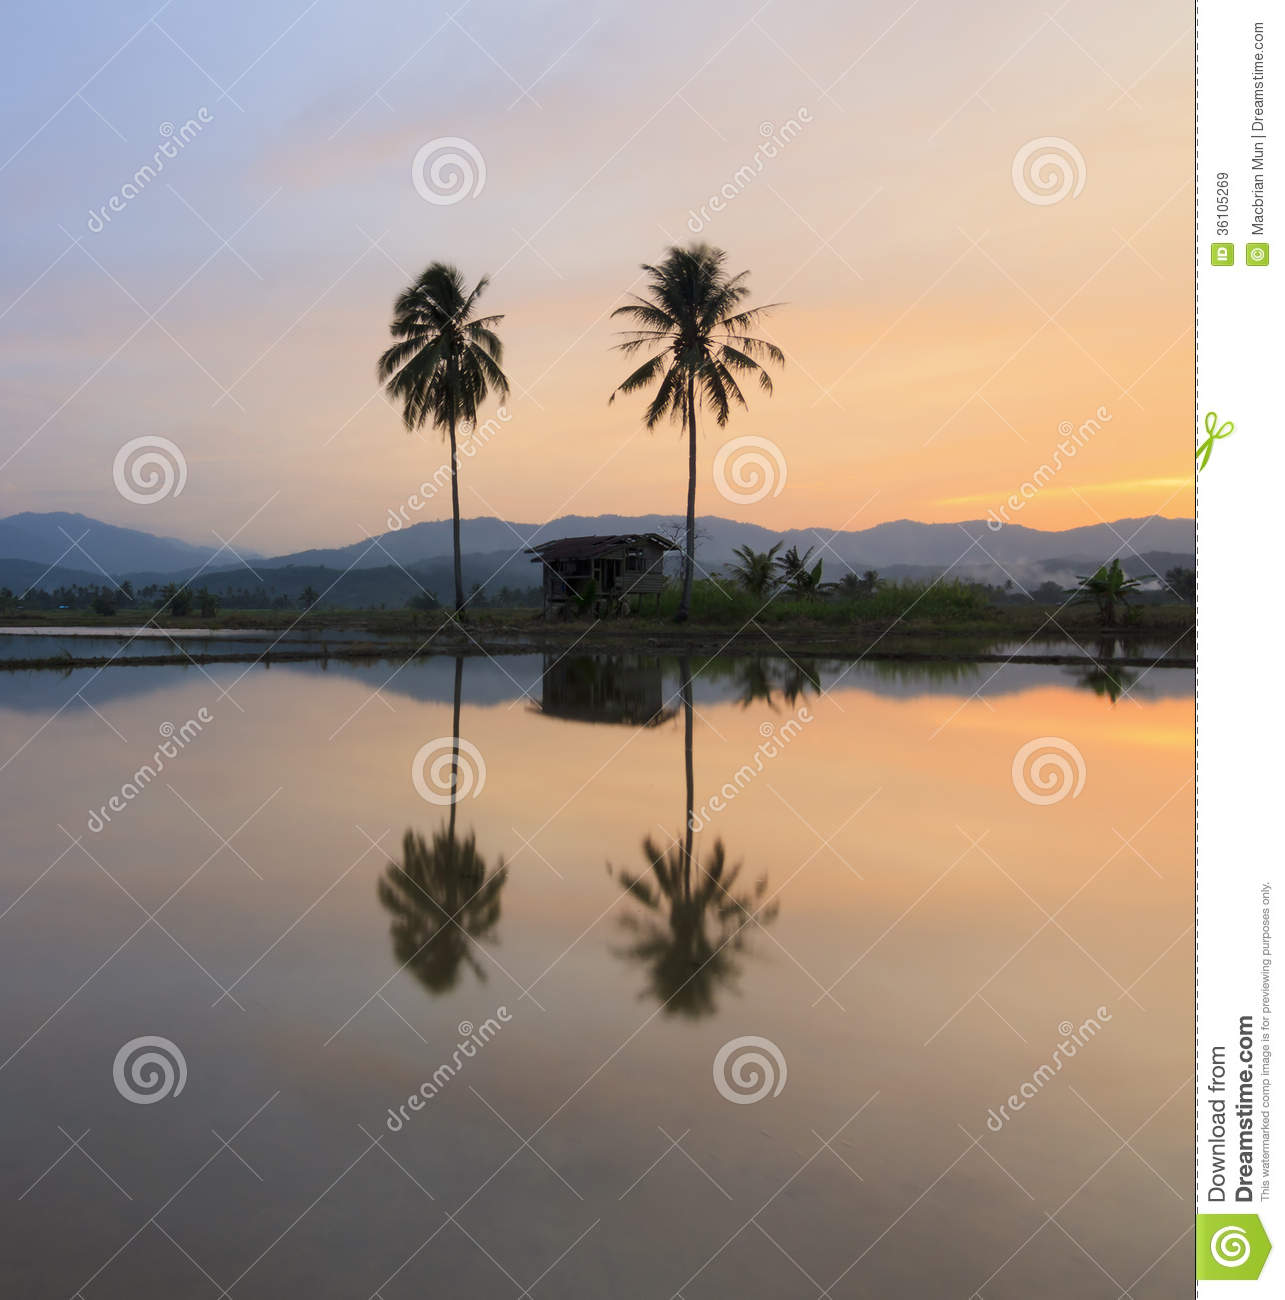 Beautiful Places In Malaysia With Description: Colorful Sunset With Palm Tree Silhouette-Malaysia Stock